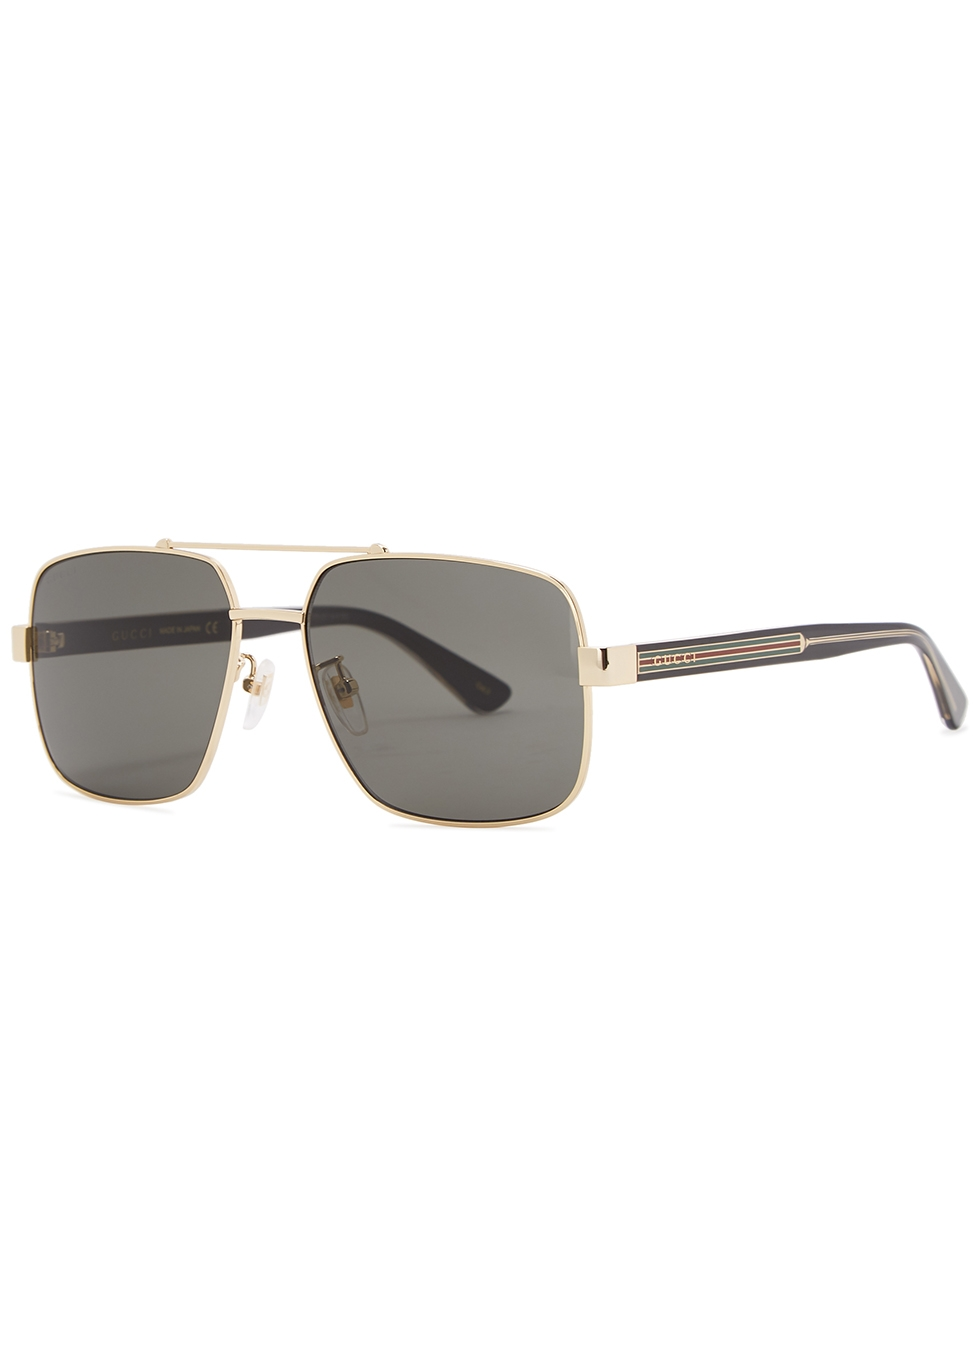 Sunglasses Women's Aviator Nichols Designer Harvey EDH29WIY